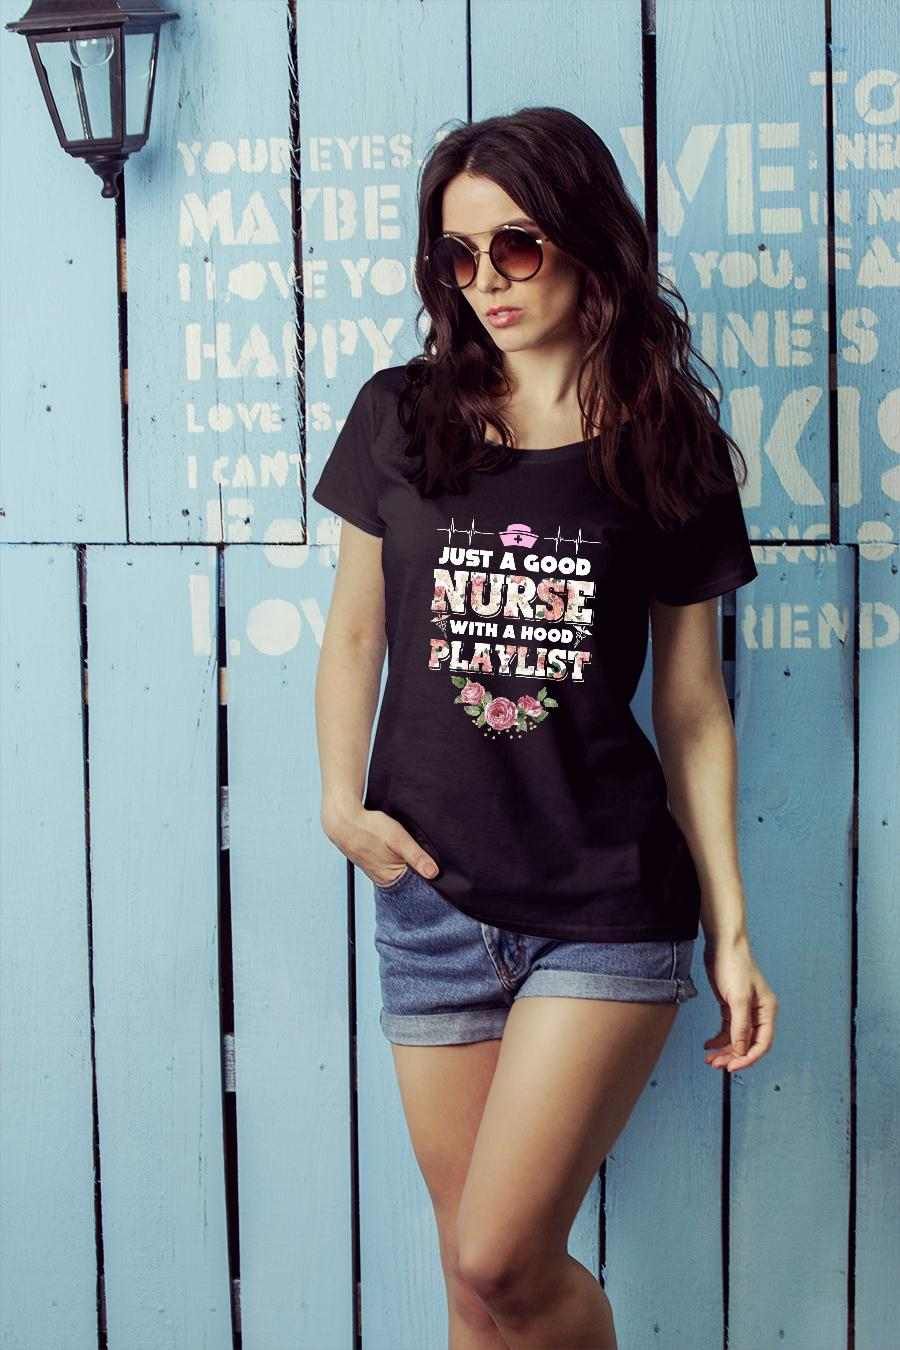 Just A Good Nurse With A Hood Playlist Shirt ladies tee official